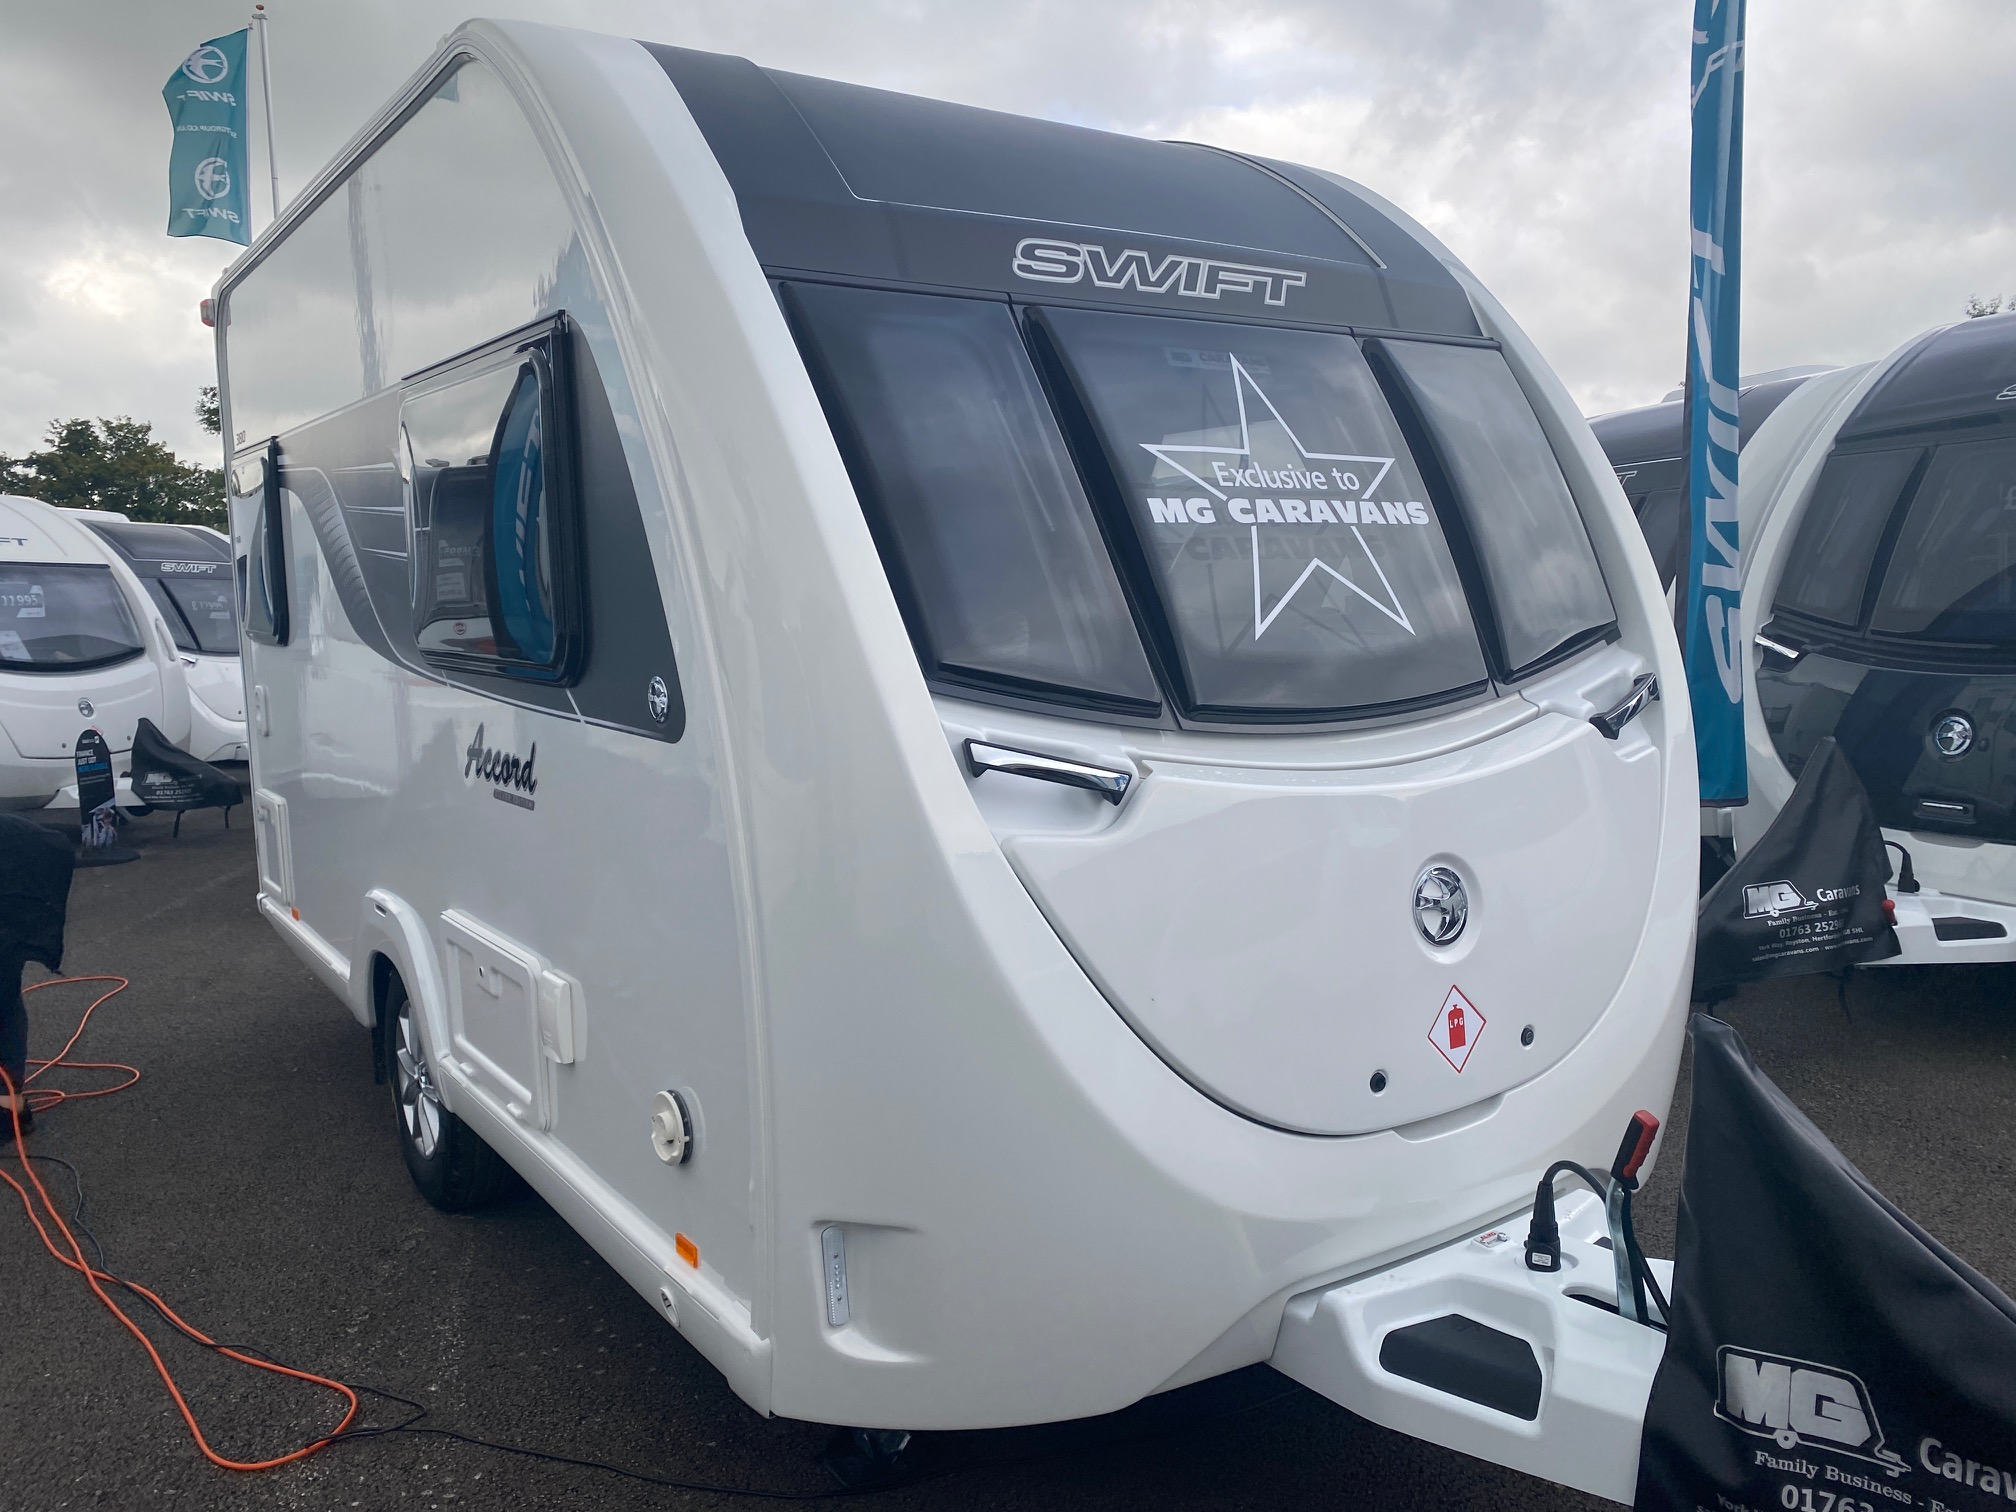 2022 Swift Accord 380 (Sprite Compact)- NEW LAYOUT!